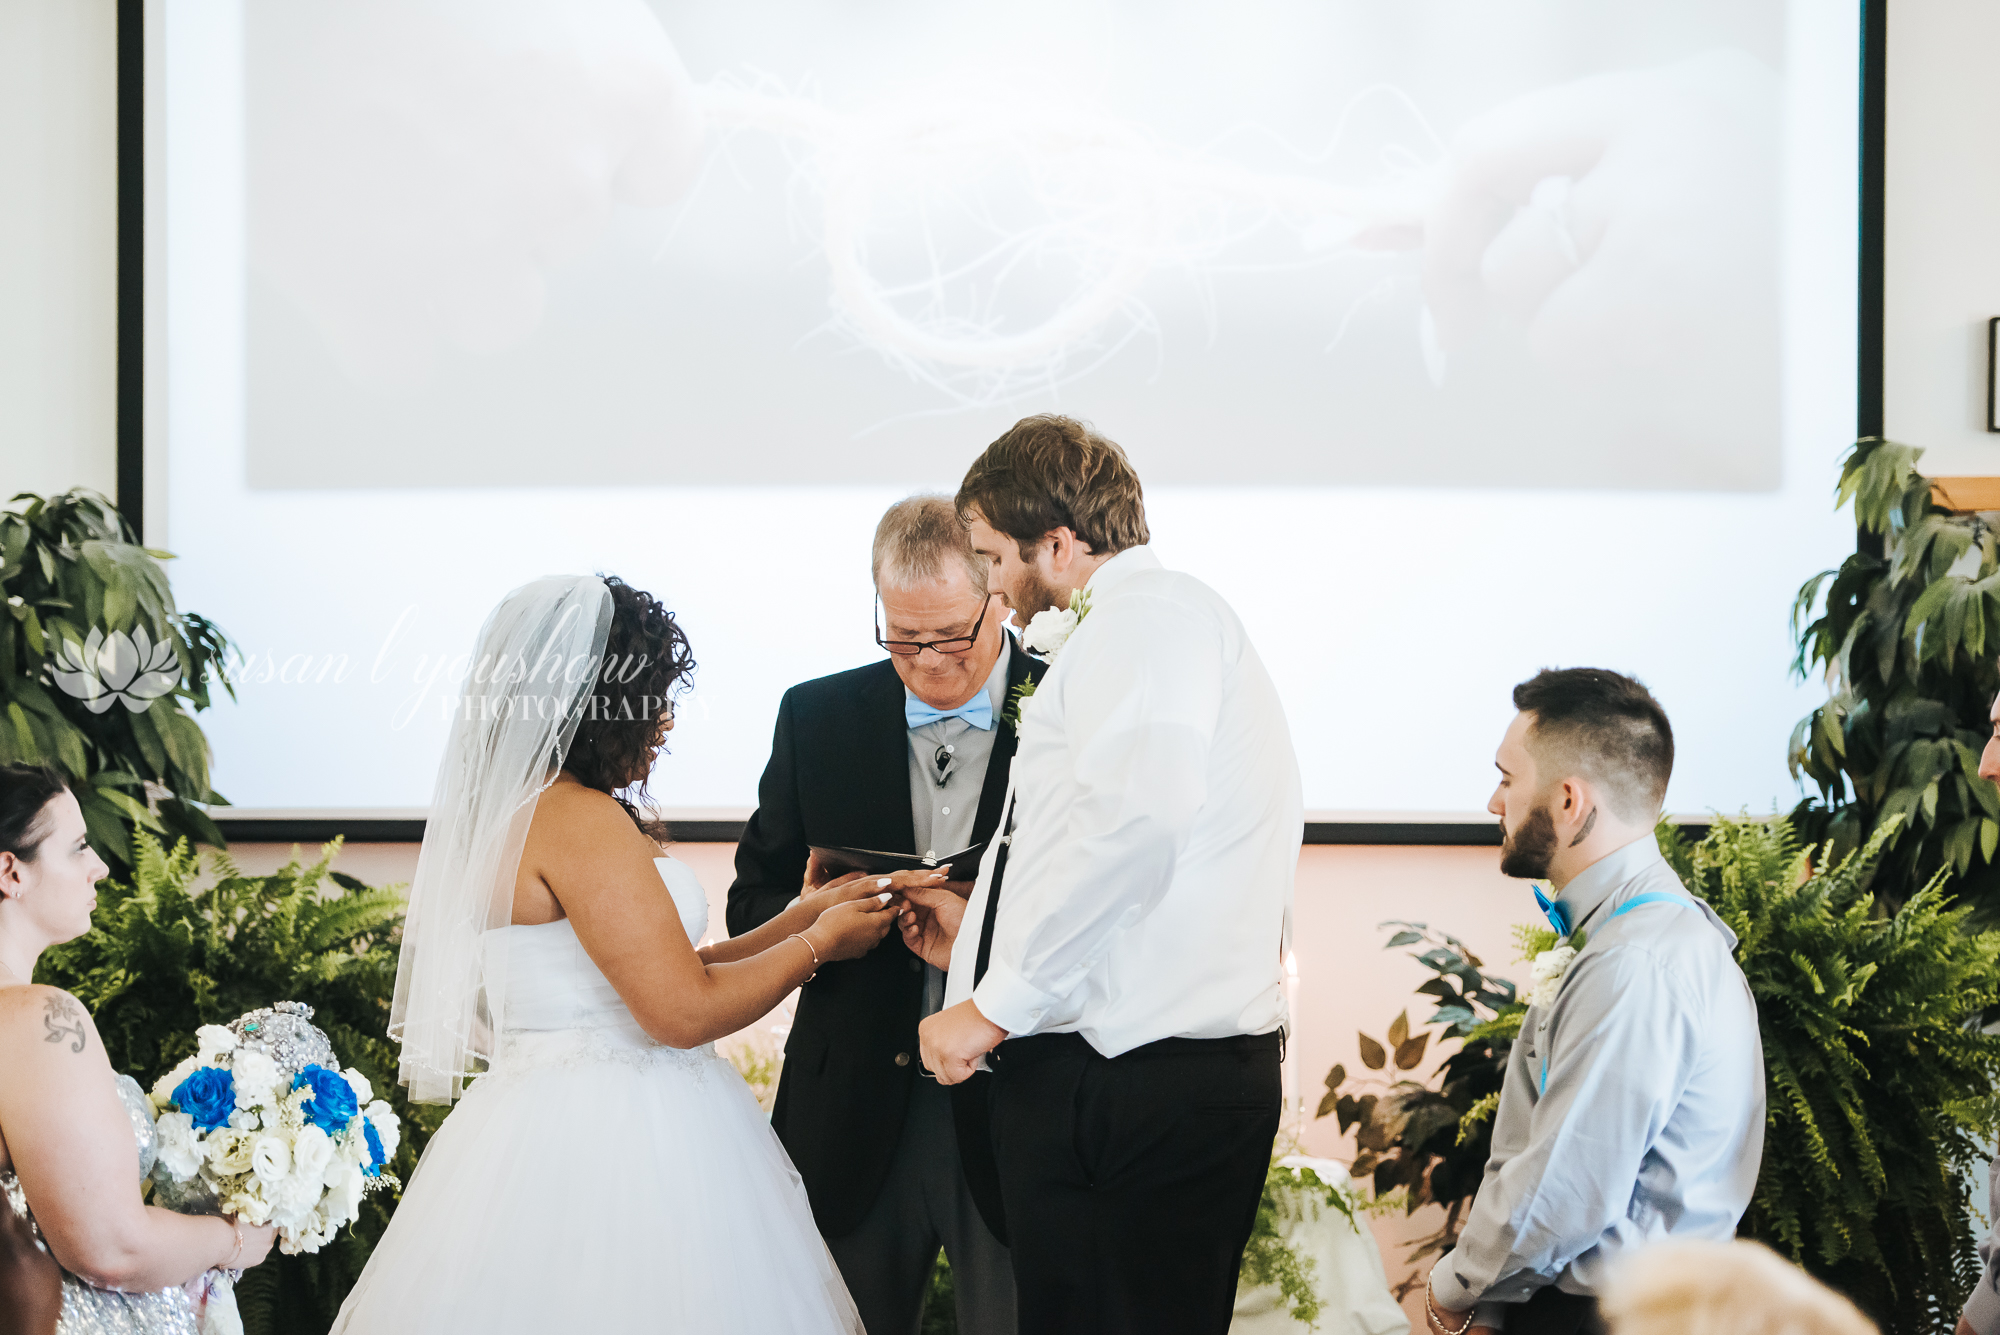 Katelyn and Wes Wedding Photos 07-13-2019 SLY Photography-74.jpg